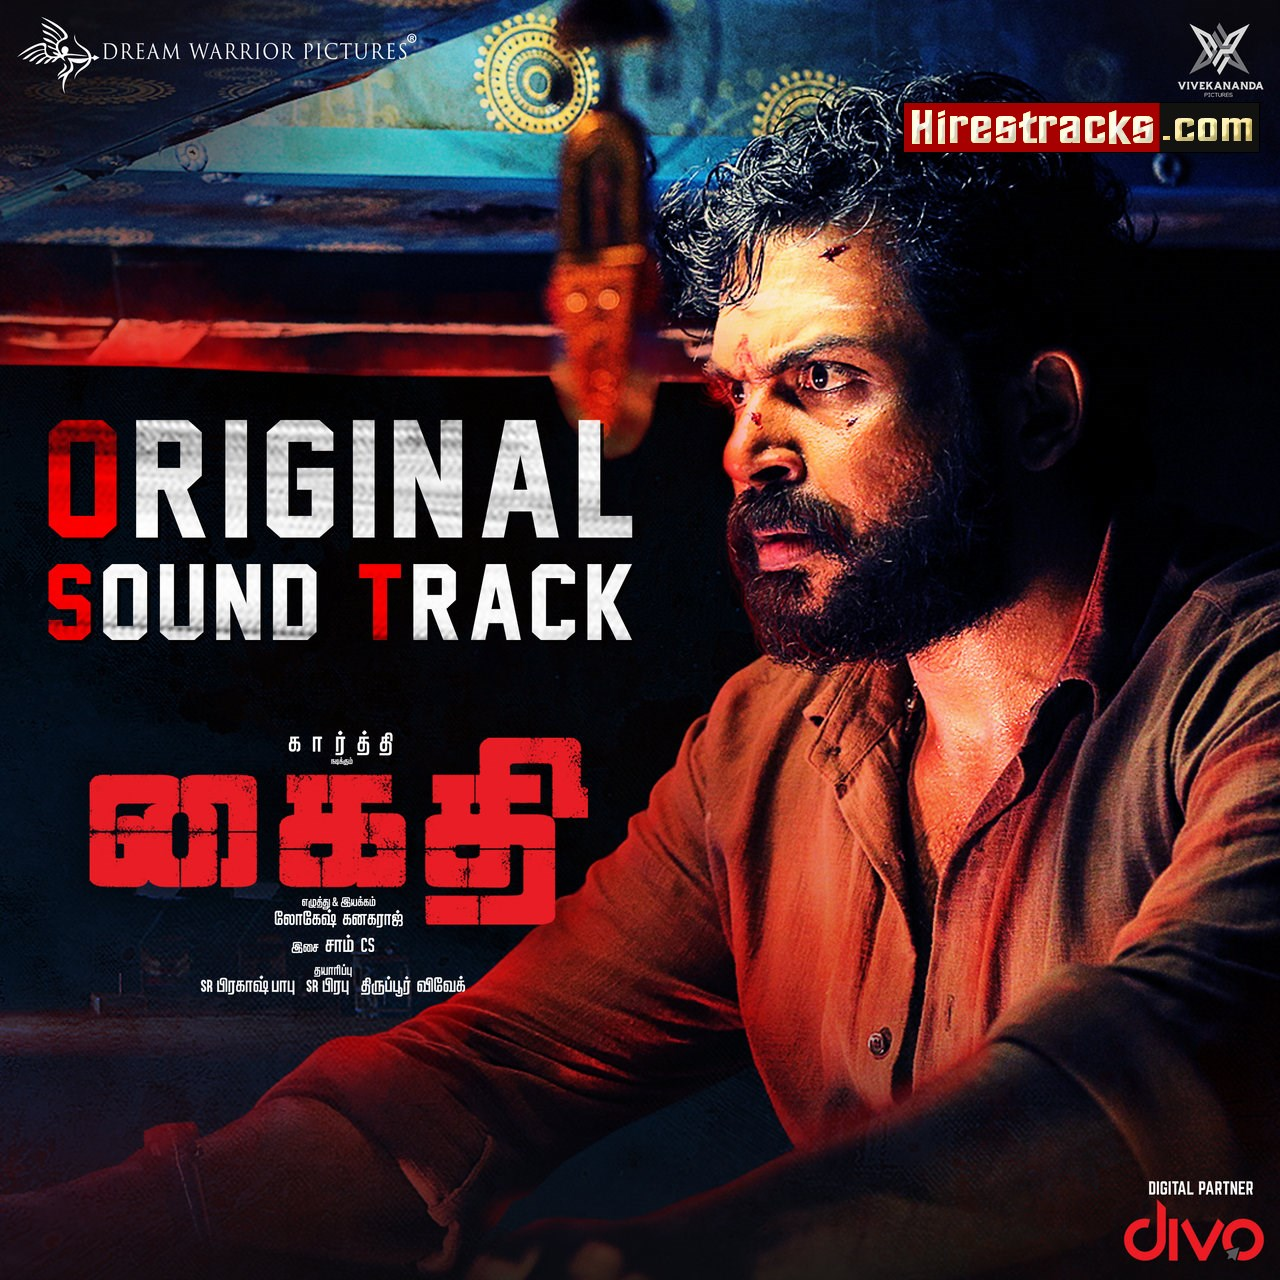 Kaithi (Original Sound Track) (2019) (Sam C.S.) (Divo) [Digital-RIP-WAV]